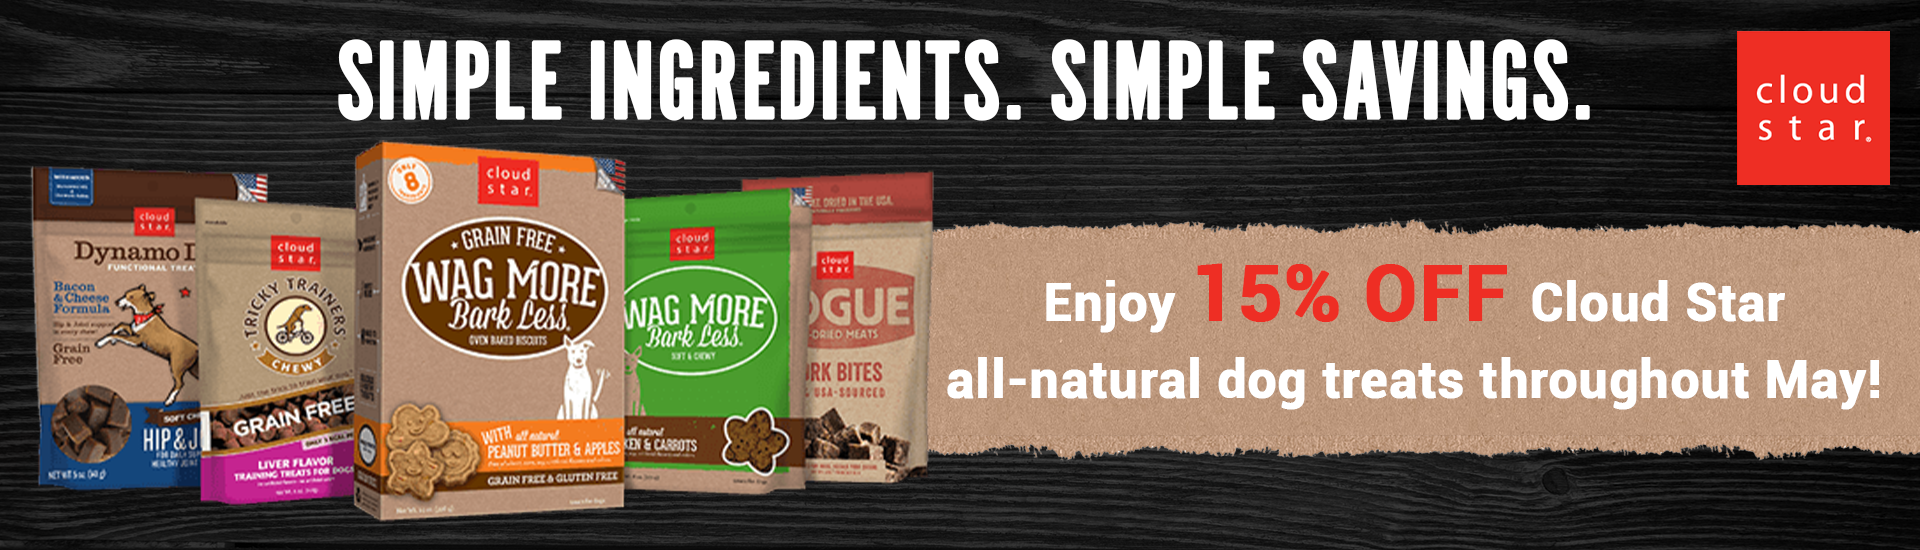 Enjoy 15% off CloudStar all-natural dog treats throughout the month of May.